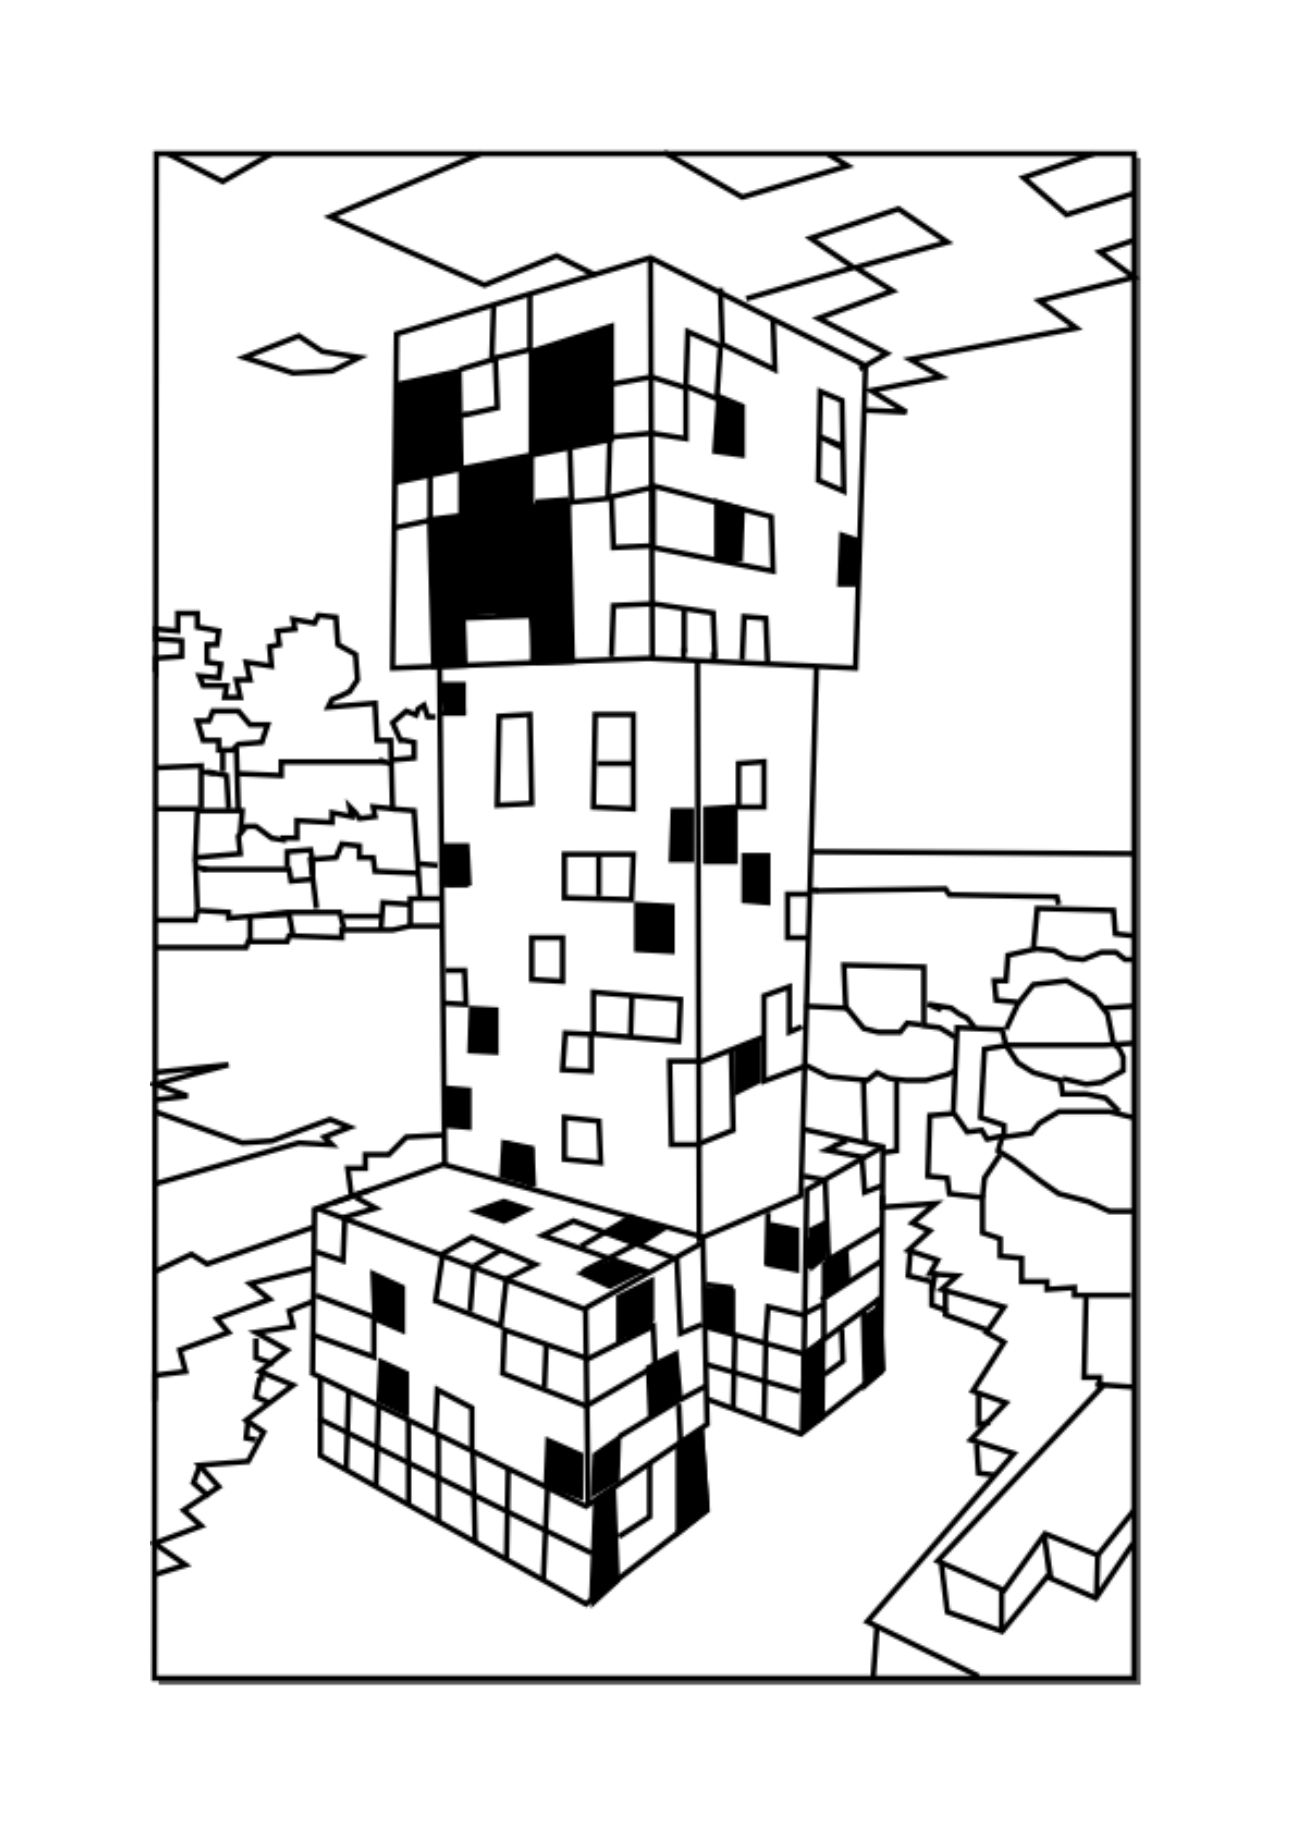 minecraft nether coloring pages minecraft coloring pages coloringpagesonlycom nether coloring minecraft pages 1 1